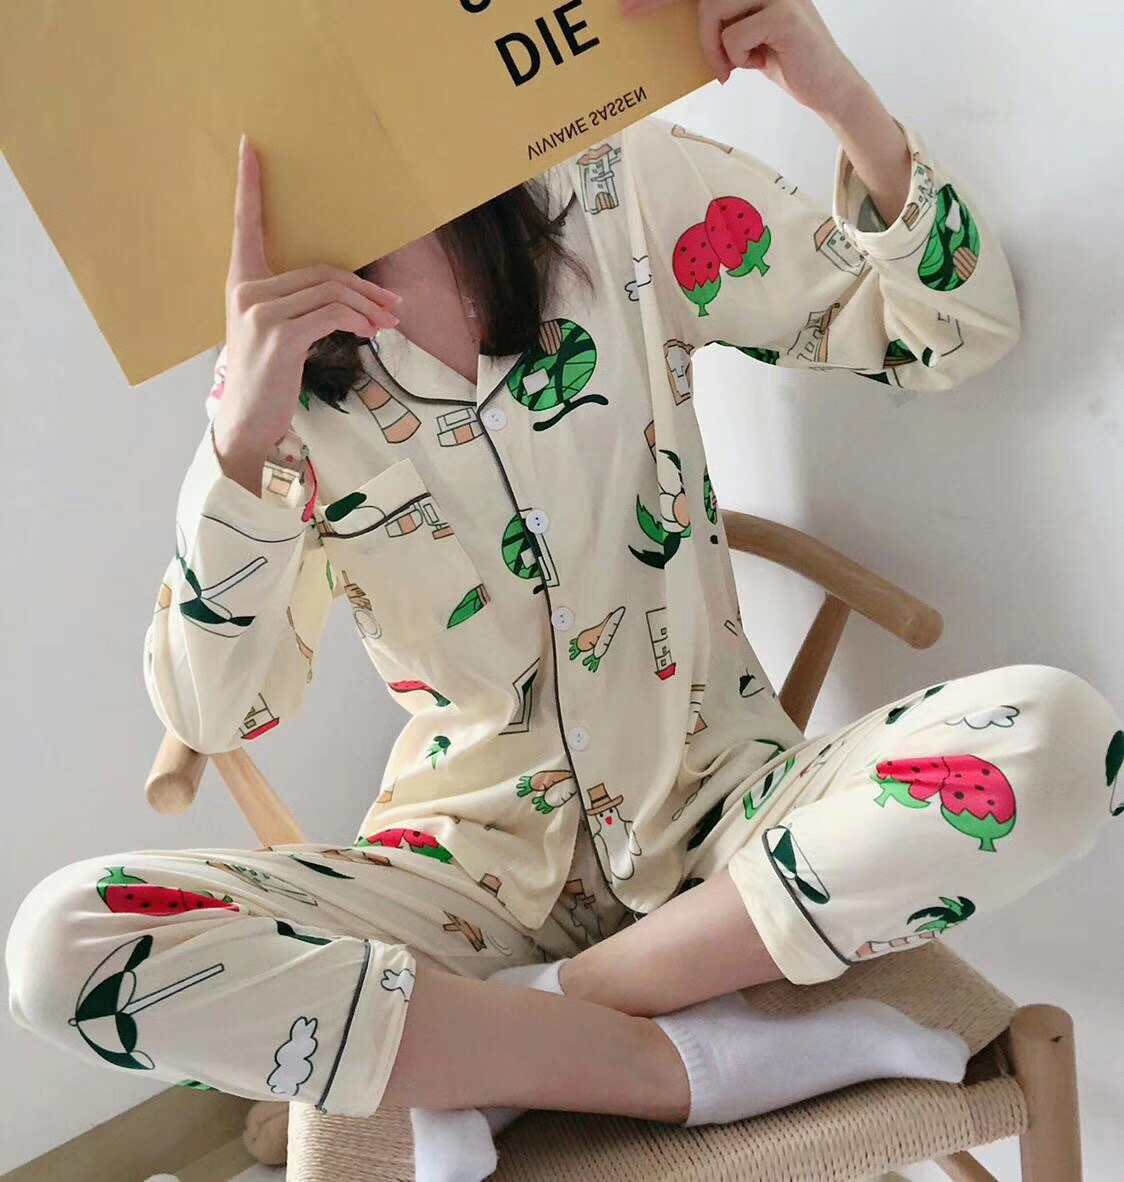 Autumn Long Sleeve Pure Cotton Pajamas Women's Long Sleeve Autumn And Winter New Style Green Pineapple Heart Leaf TUCANO Pajamas